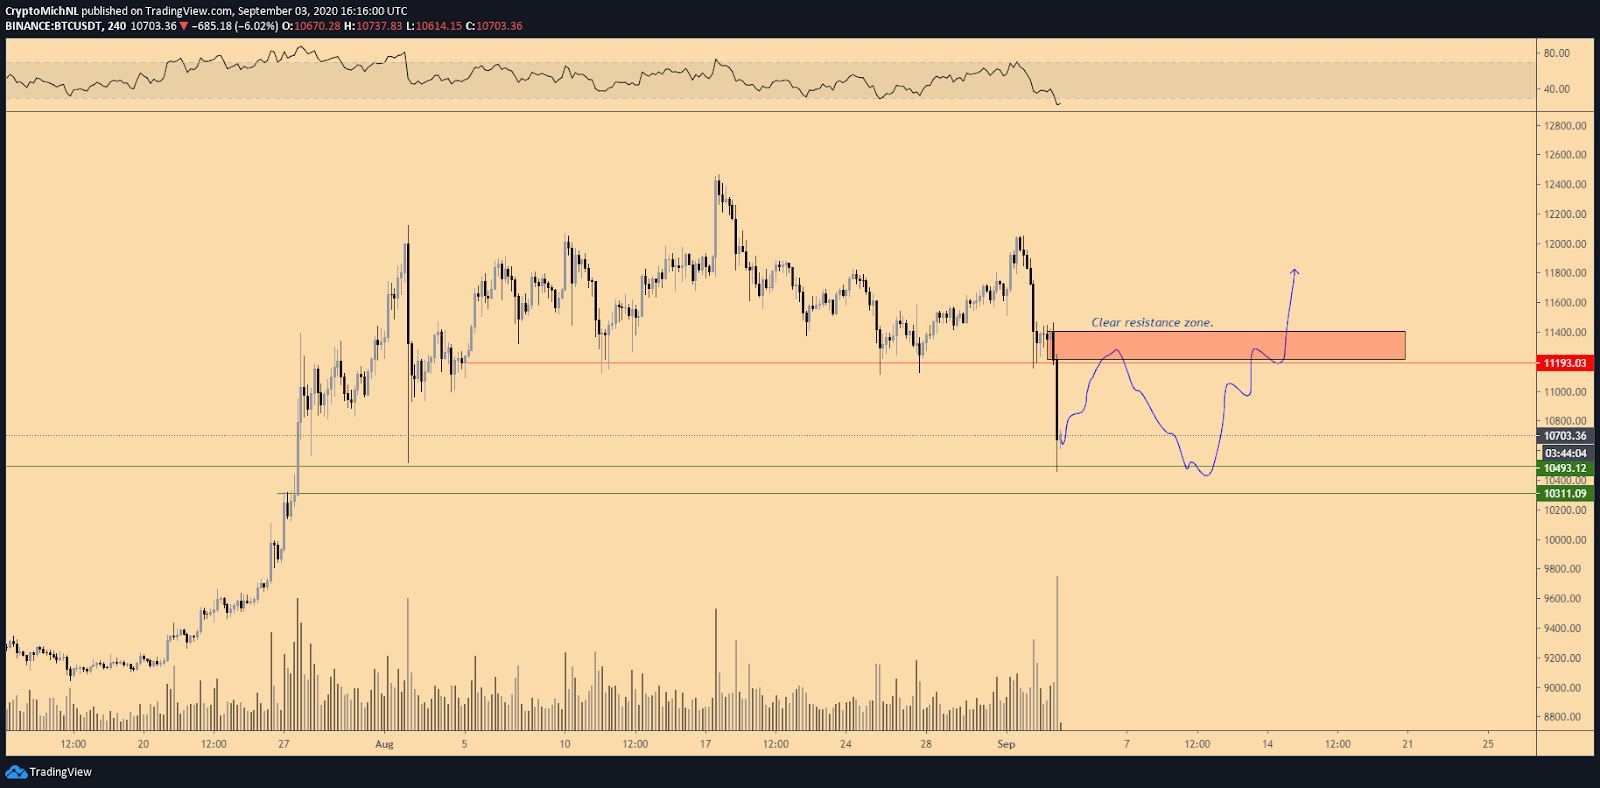 BTC/USDT 4-hour bullish scenario chart. Source: TradingView